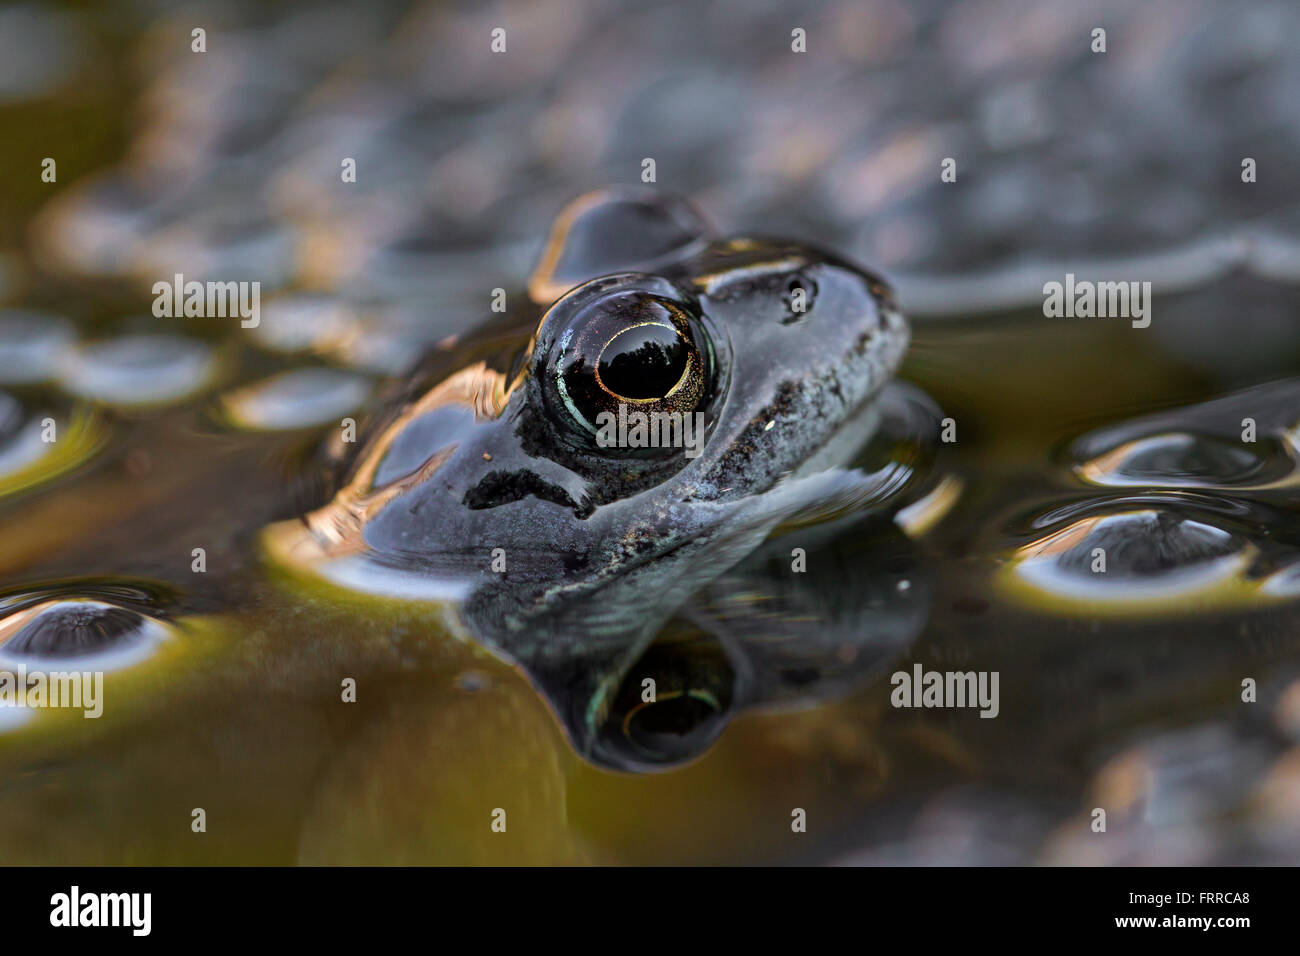 European common frog (Rana temporaria) close up  of head among frogspawn in pond - Stock Image